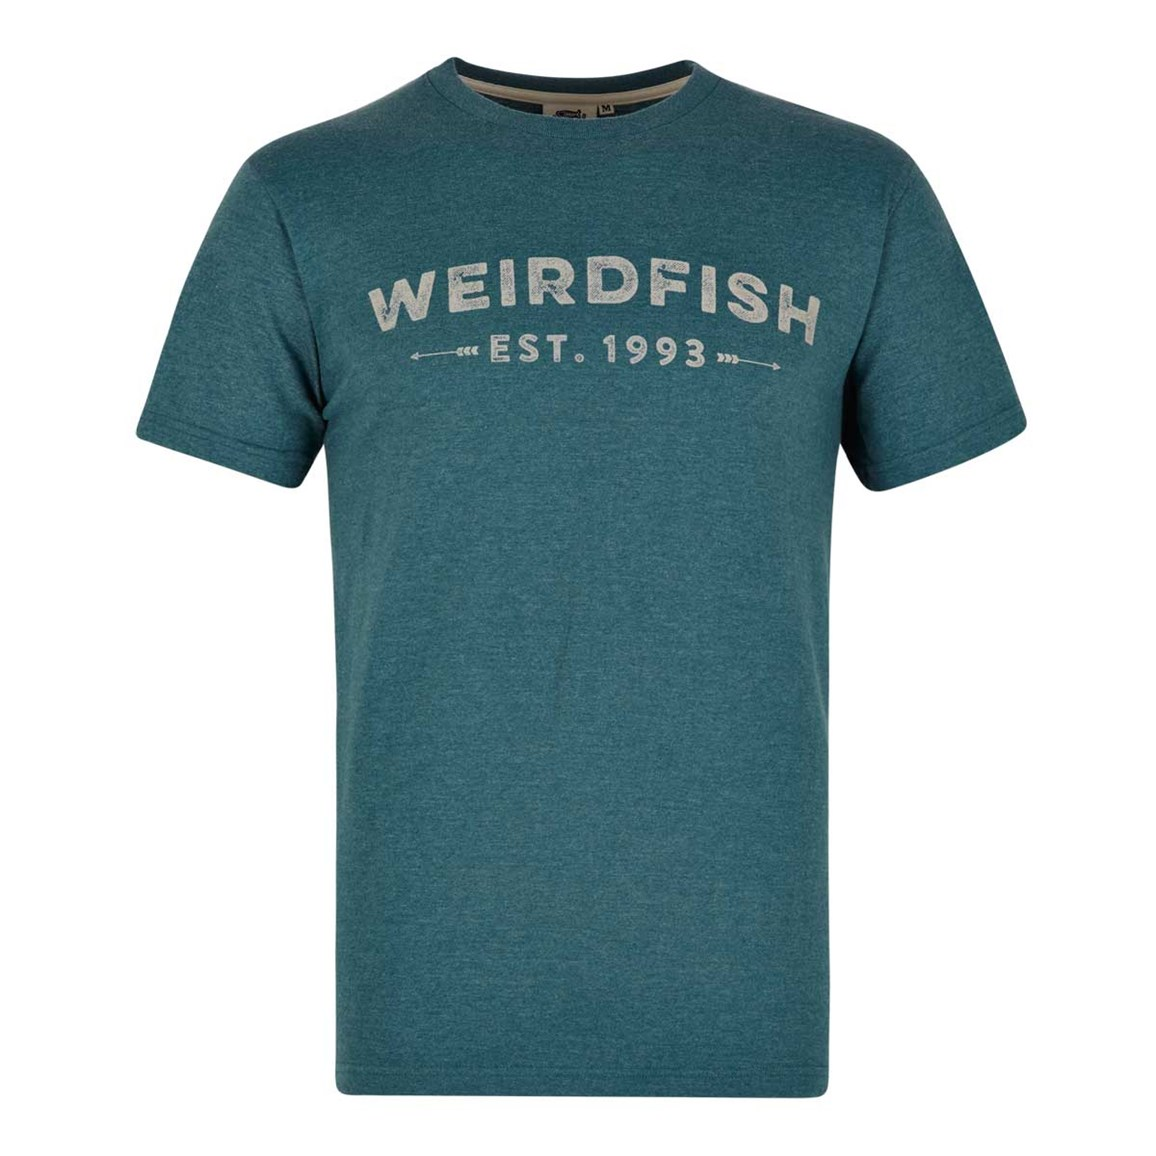 Image of Weird Fish Yang Jersey Marl Graphic Print T-Shirt Sea Green Size L